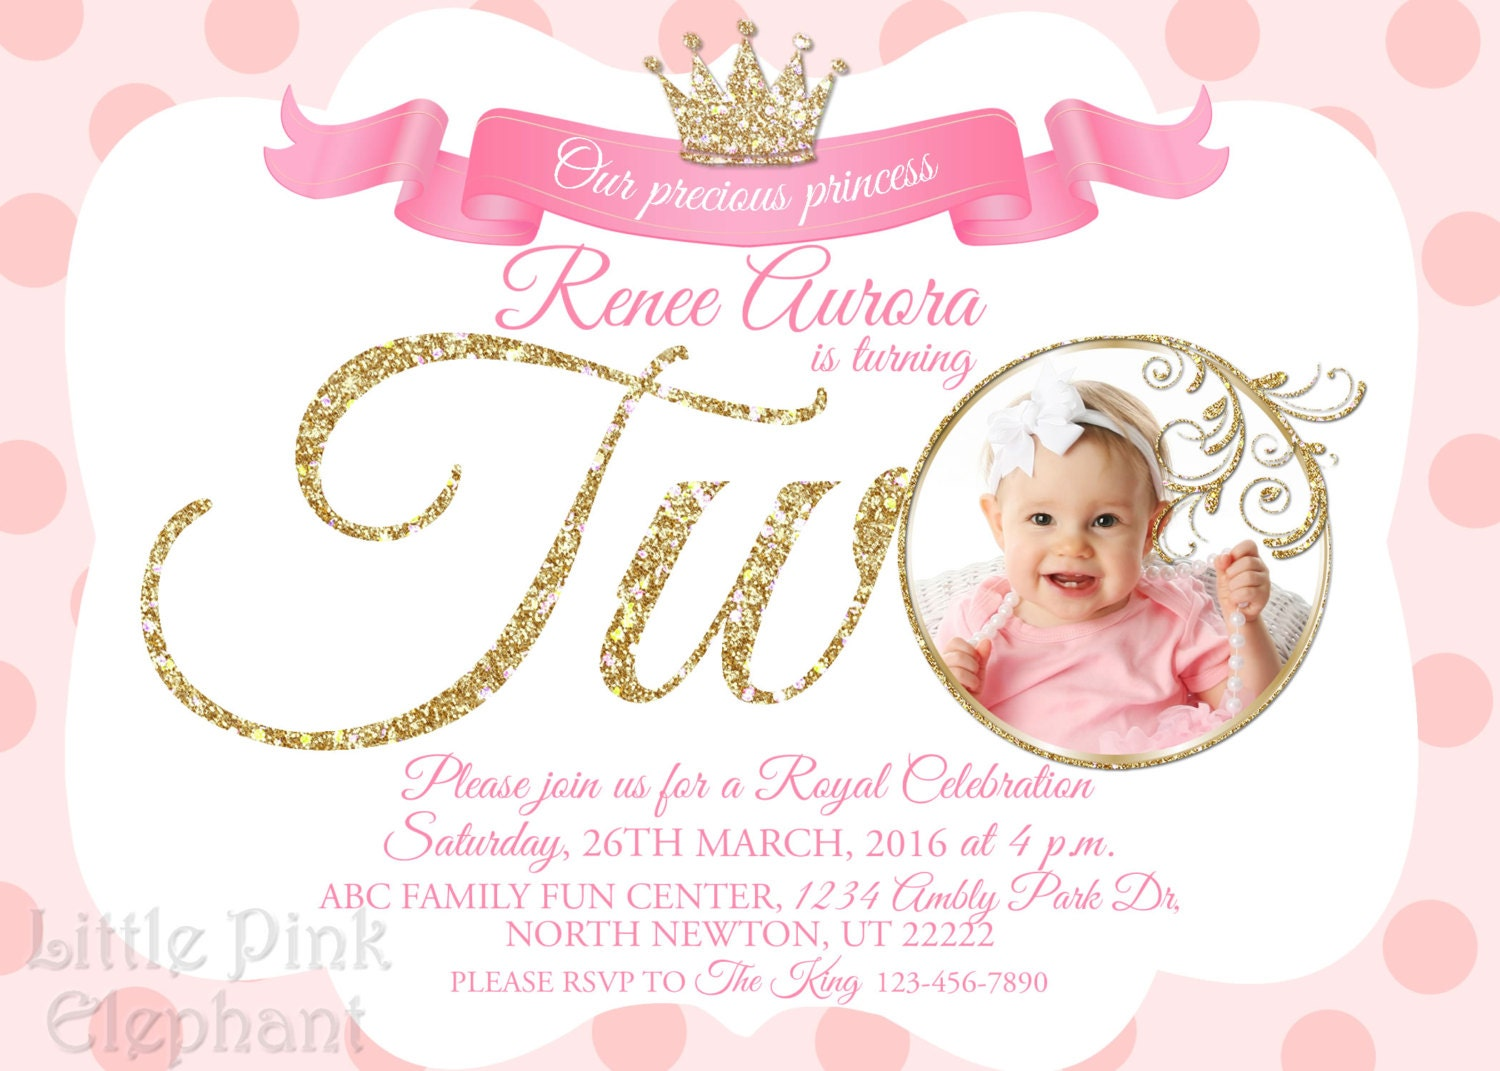 Second birthday invitation girl Princess invitation Royal